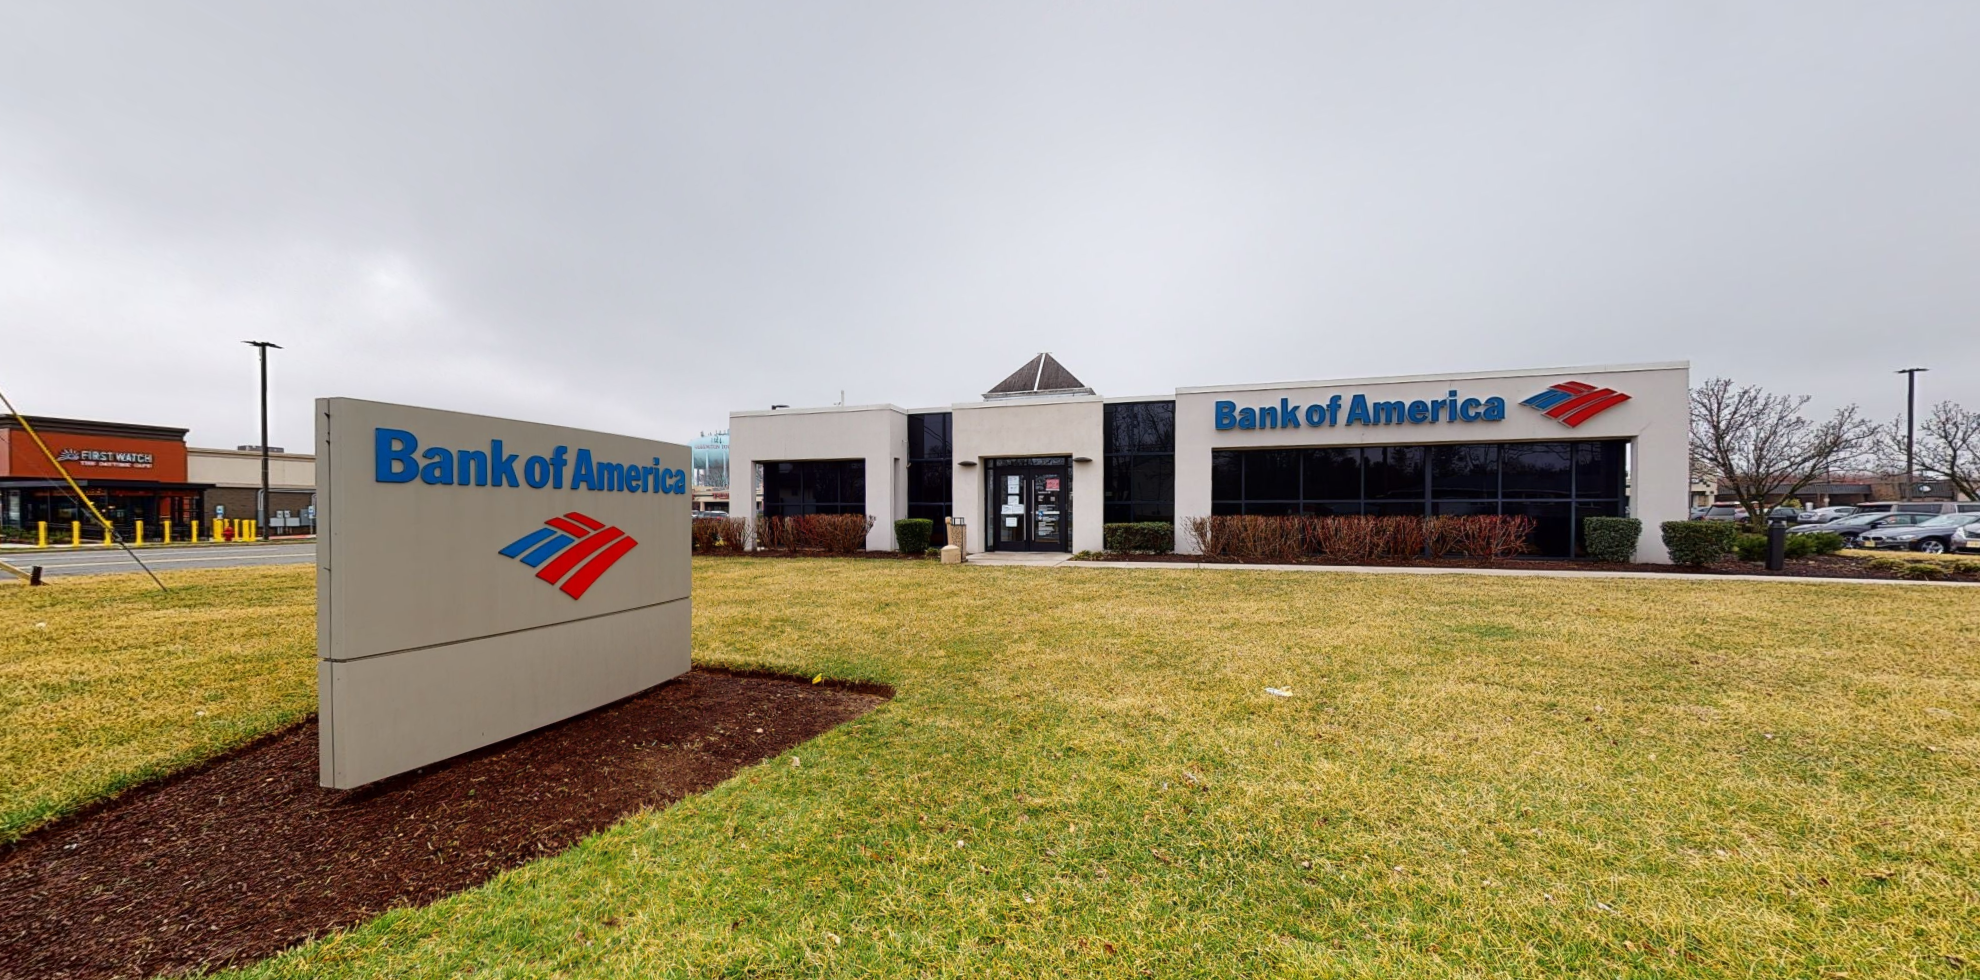 Bank of America financial center with drive-thru ATM | 407 Egg Harbor Rd, Sewell, NJ 08080